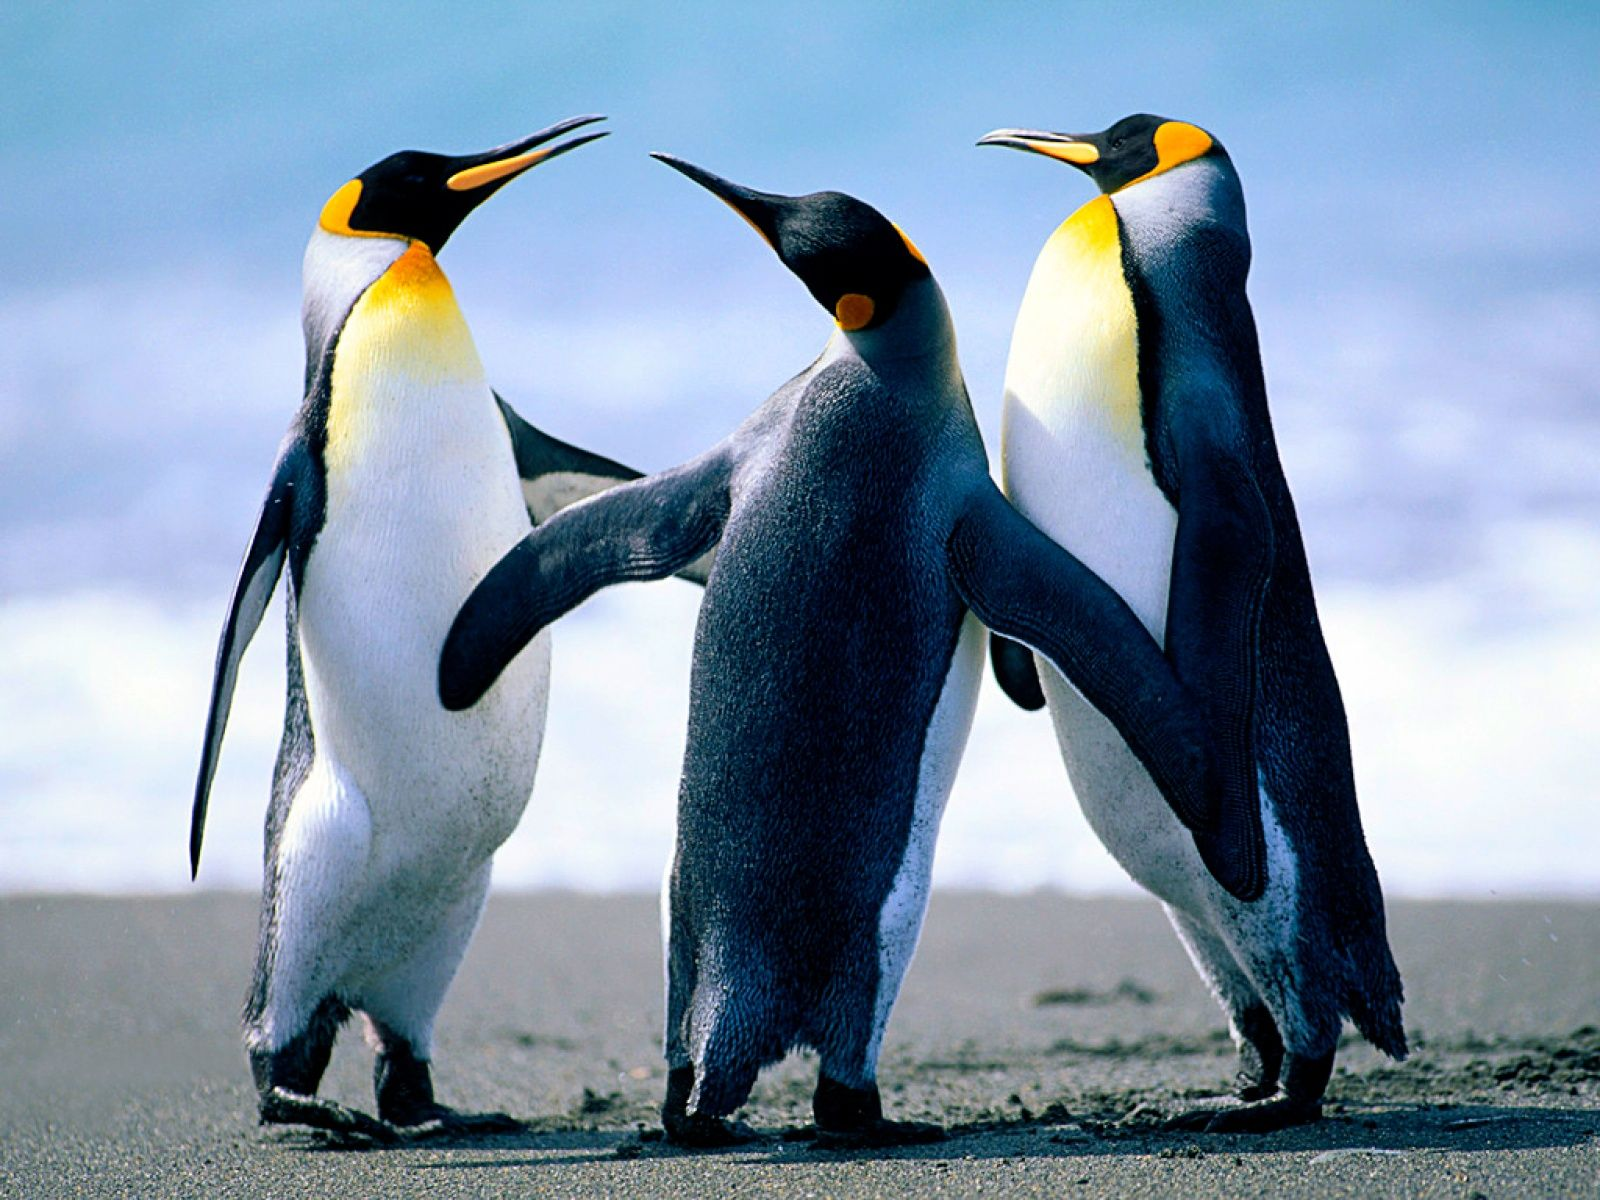 Penguin Wallpapers High Quality Images of Penguin in Good 1600x1200